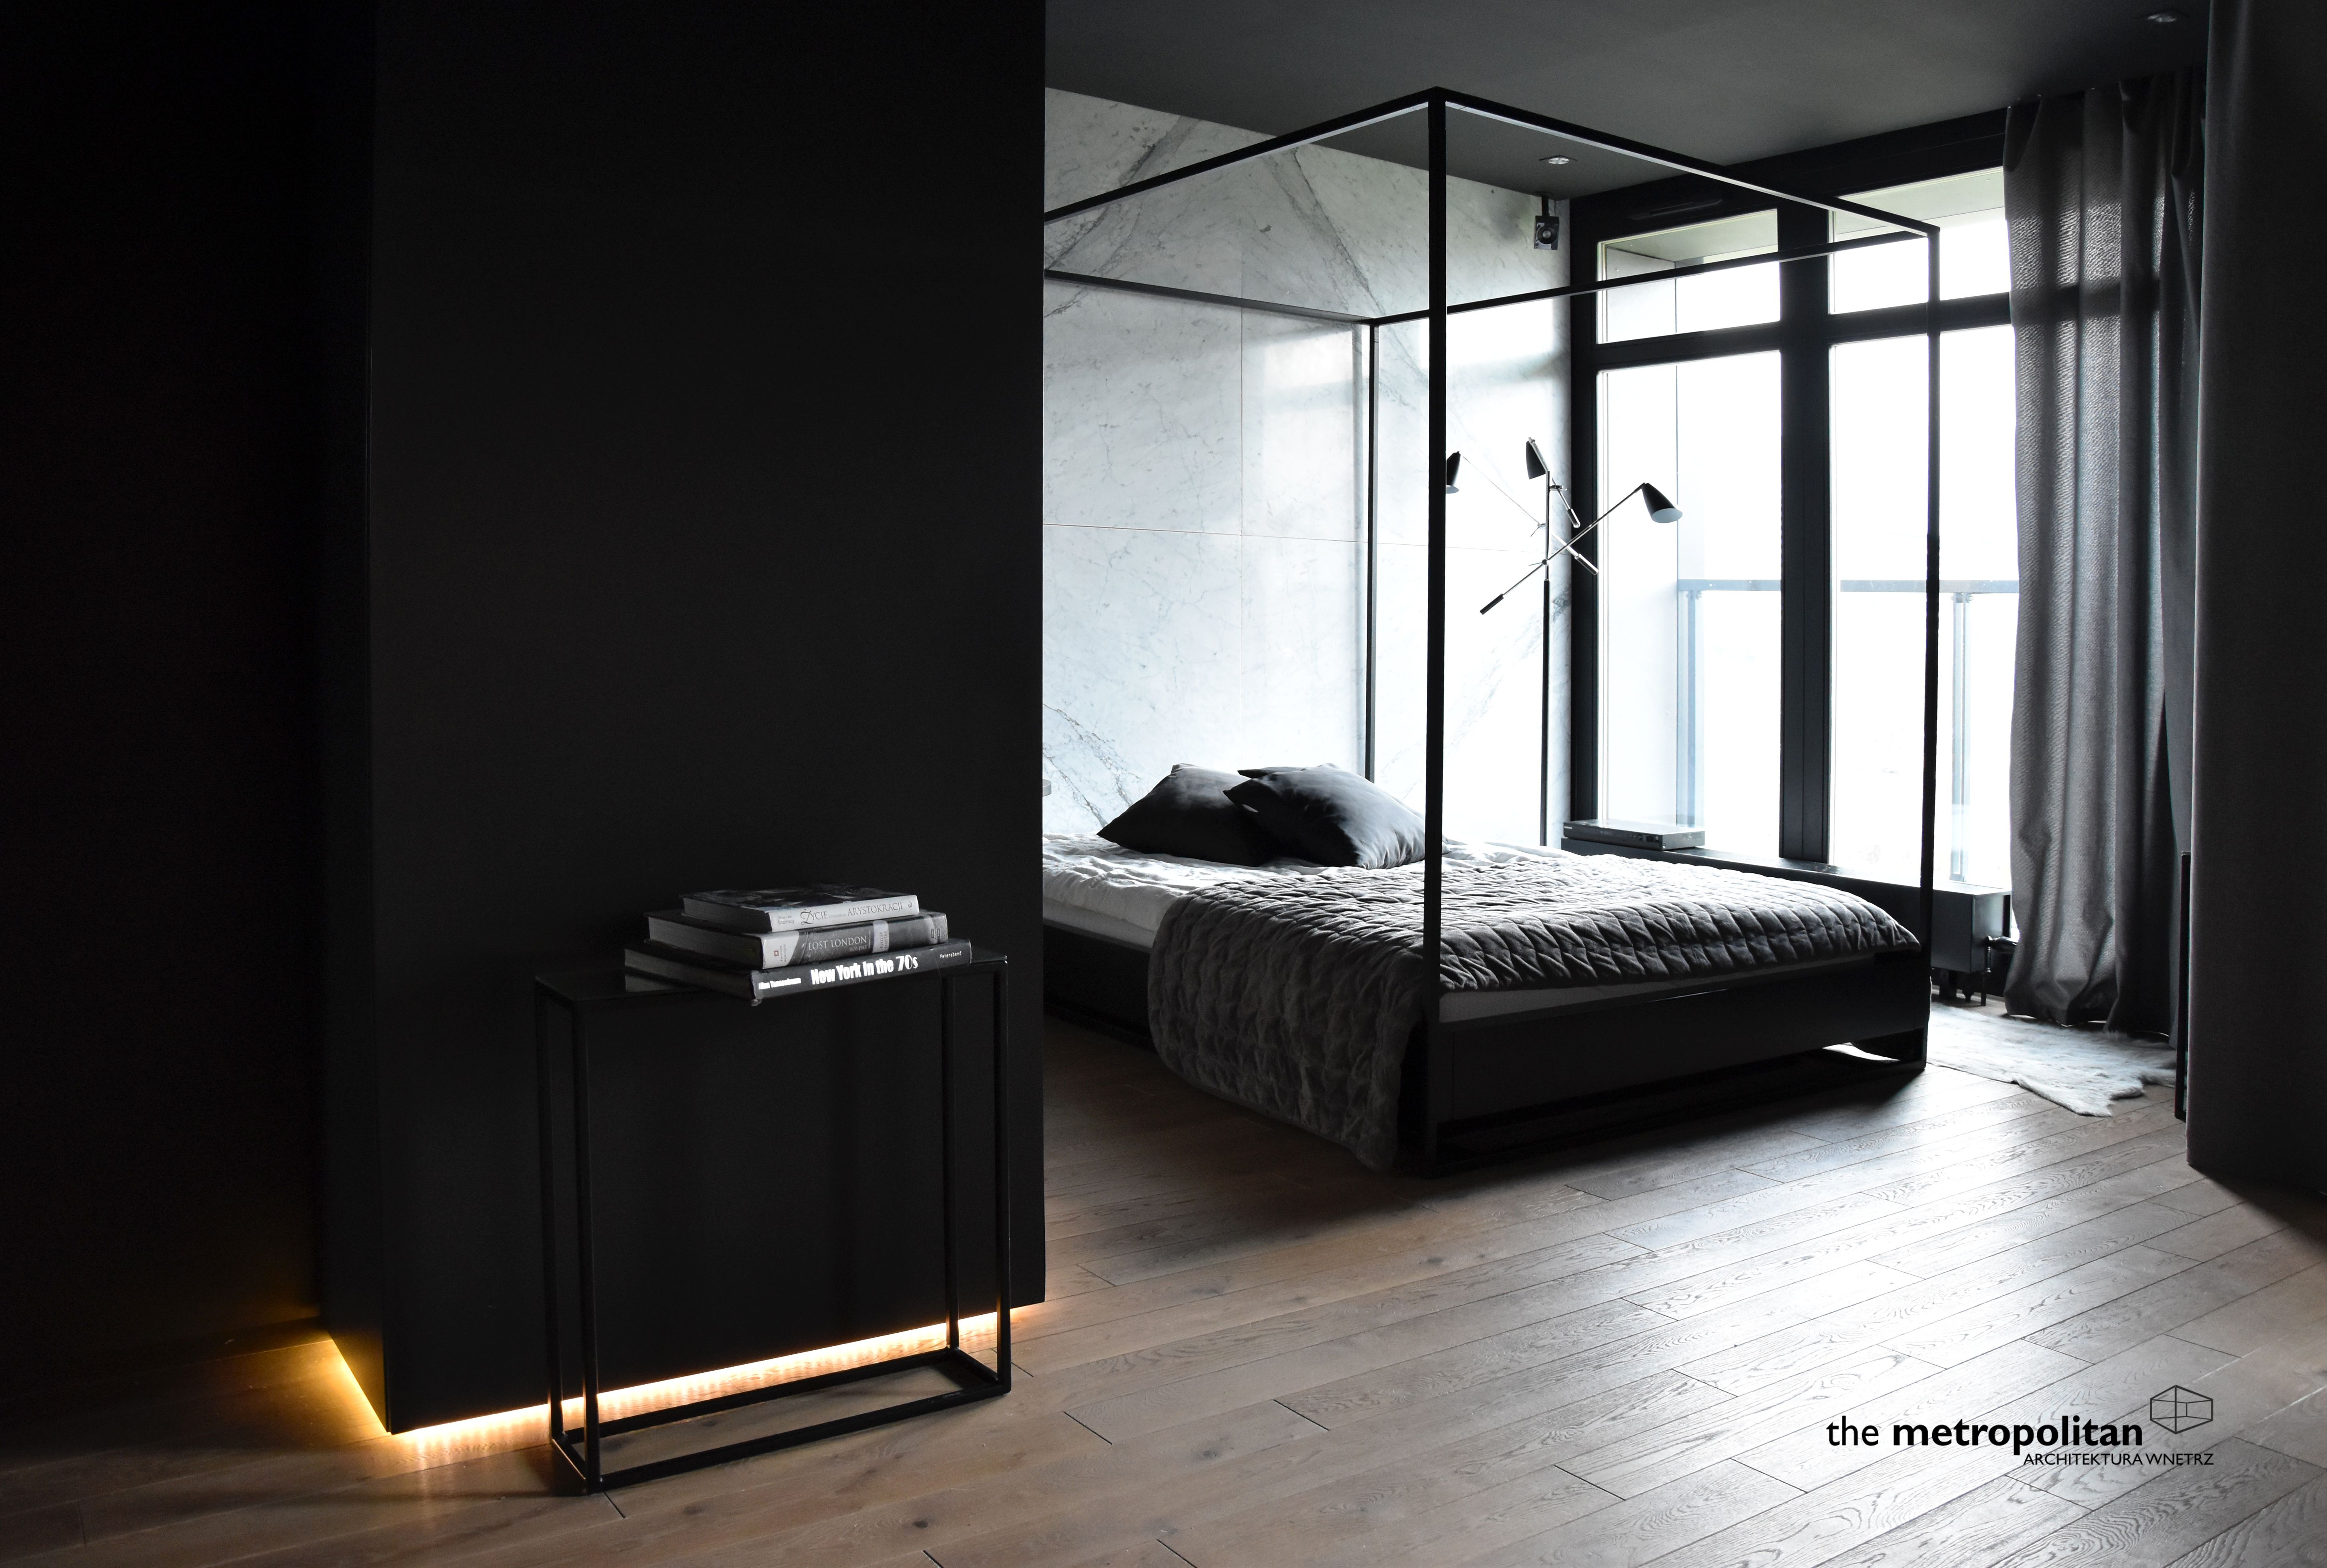 Architect Apartment with City View